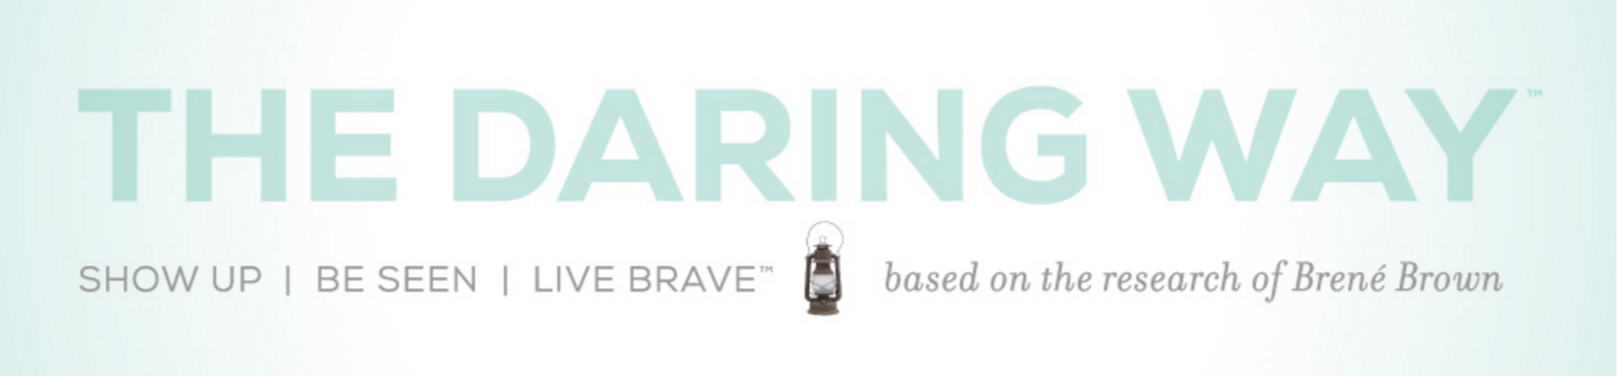 daring way header 2